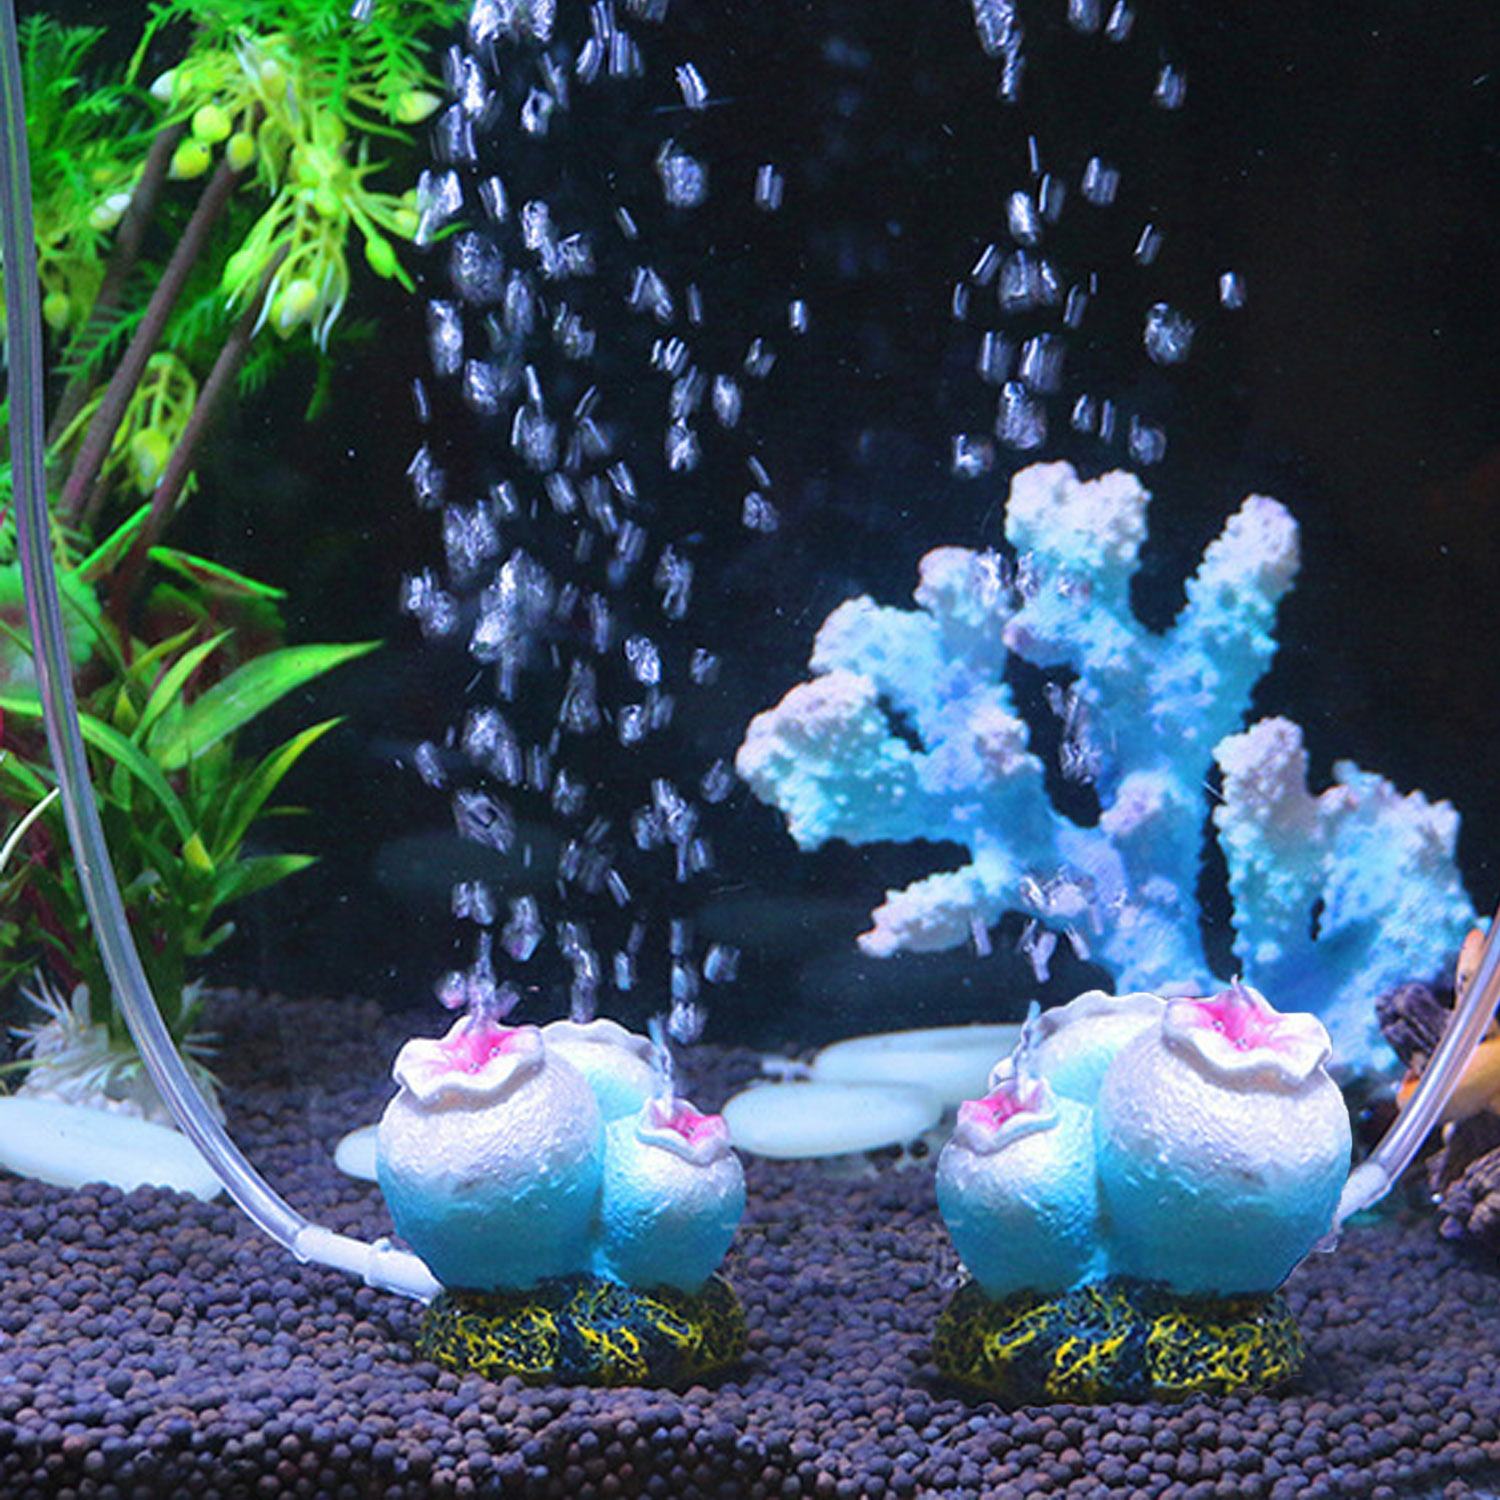 Behogar Coral Shape Fashion Portable Aquarium Tank Fish Ornament Oxygen Air Pump Bubbling Decoration for Fish Tank